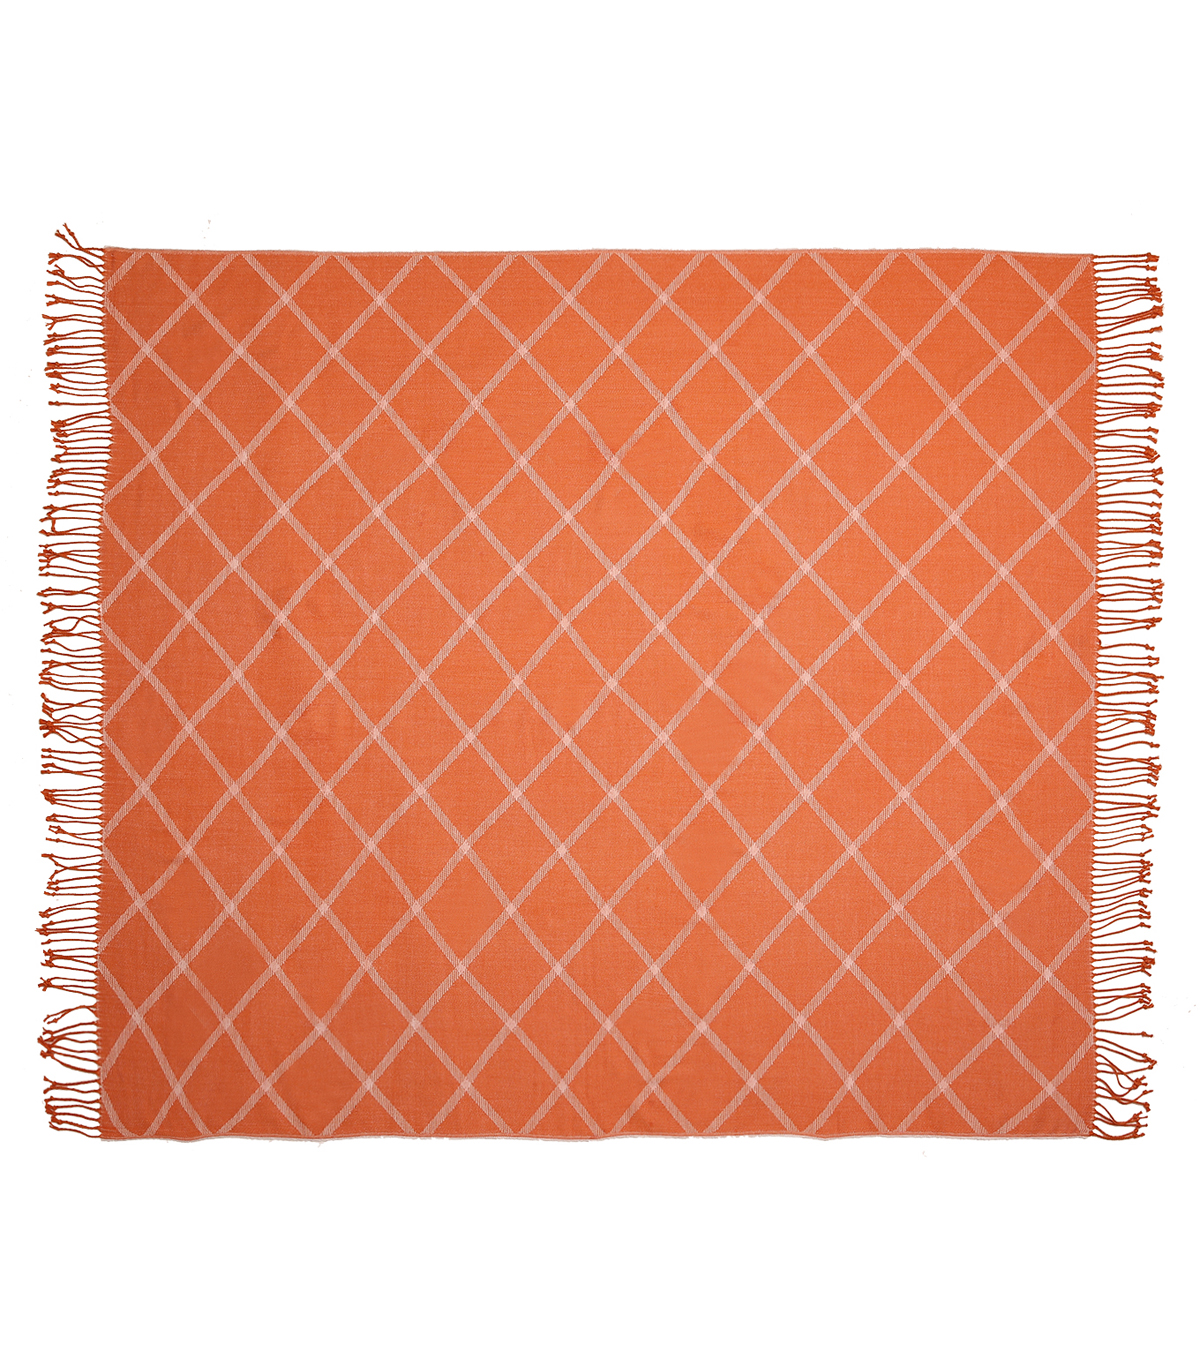 Simply Autumn 50x60\u0027\u0027 Plaid Diamond Throw-Cream & Orange